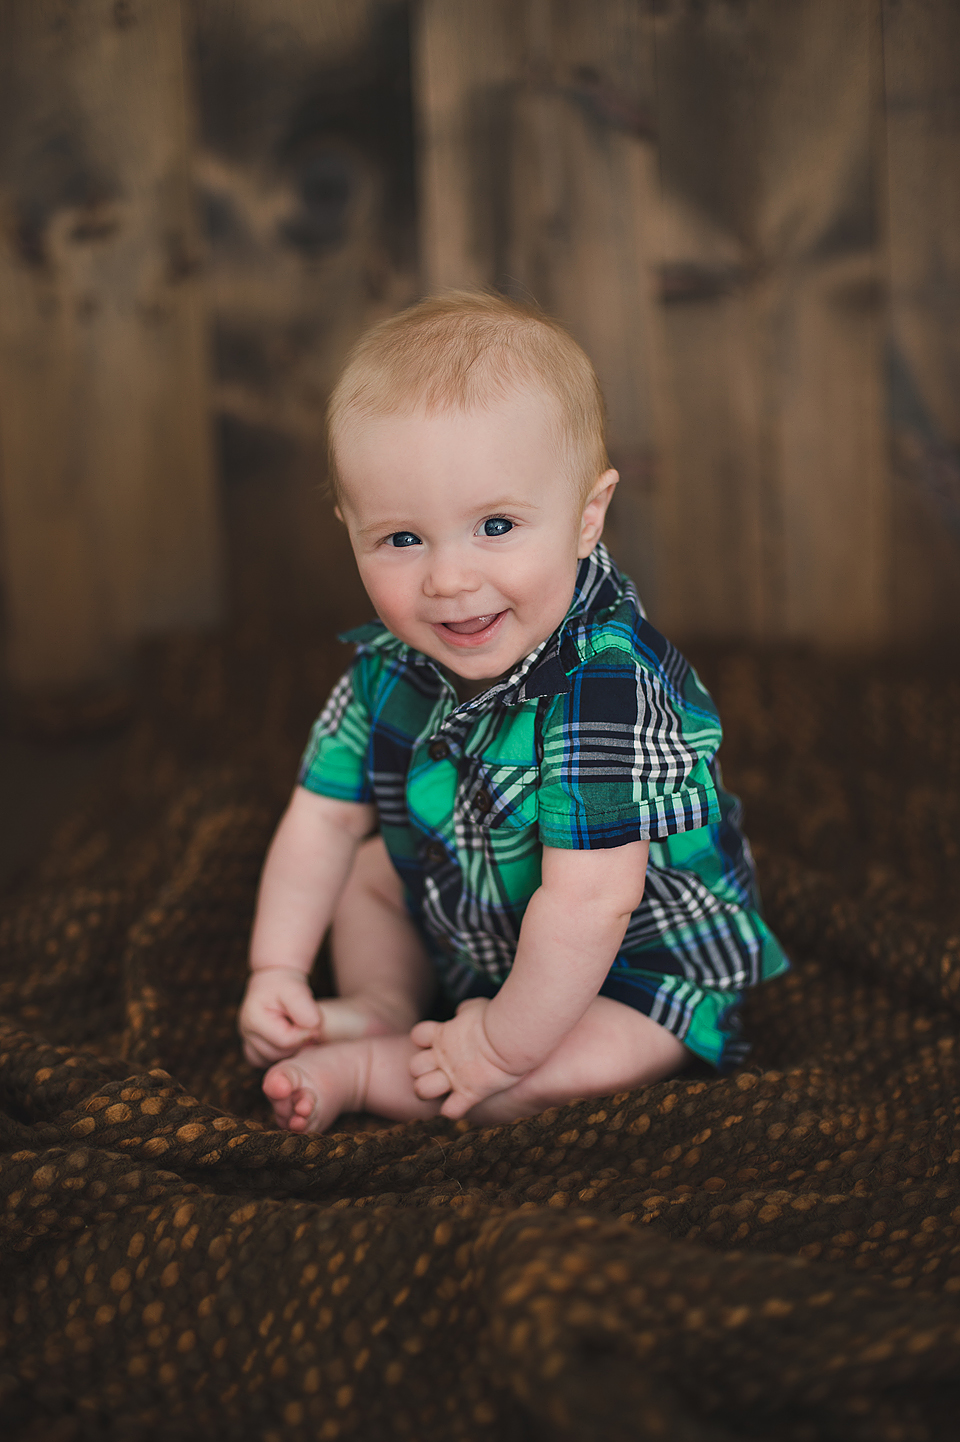 6 month old portrait